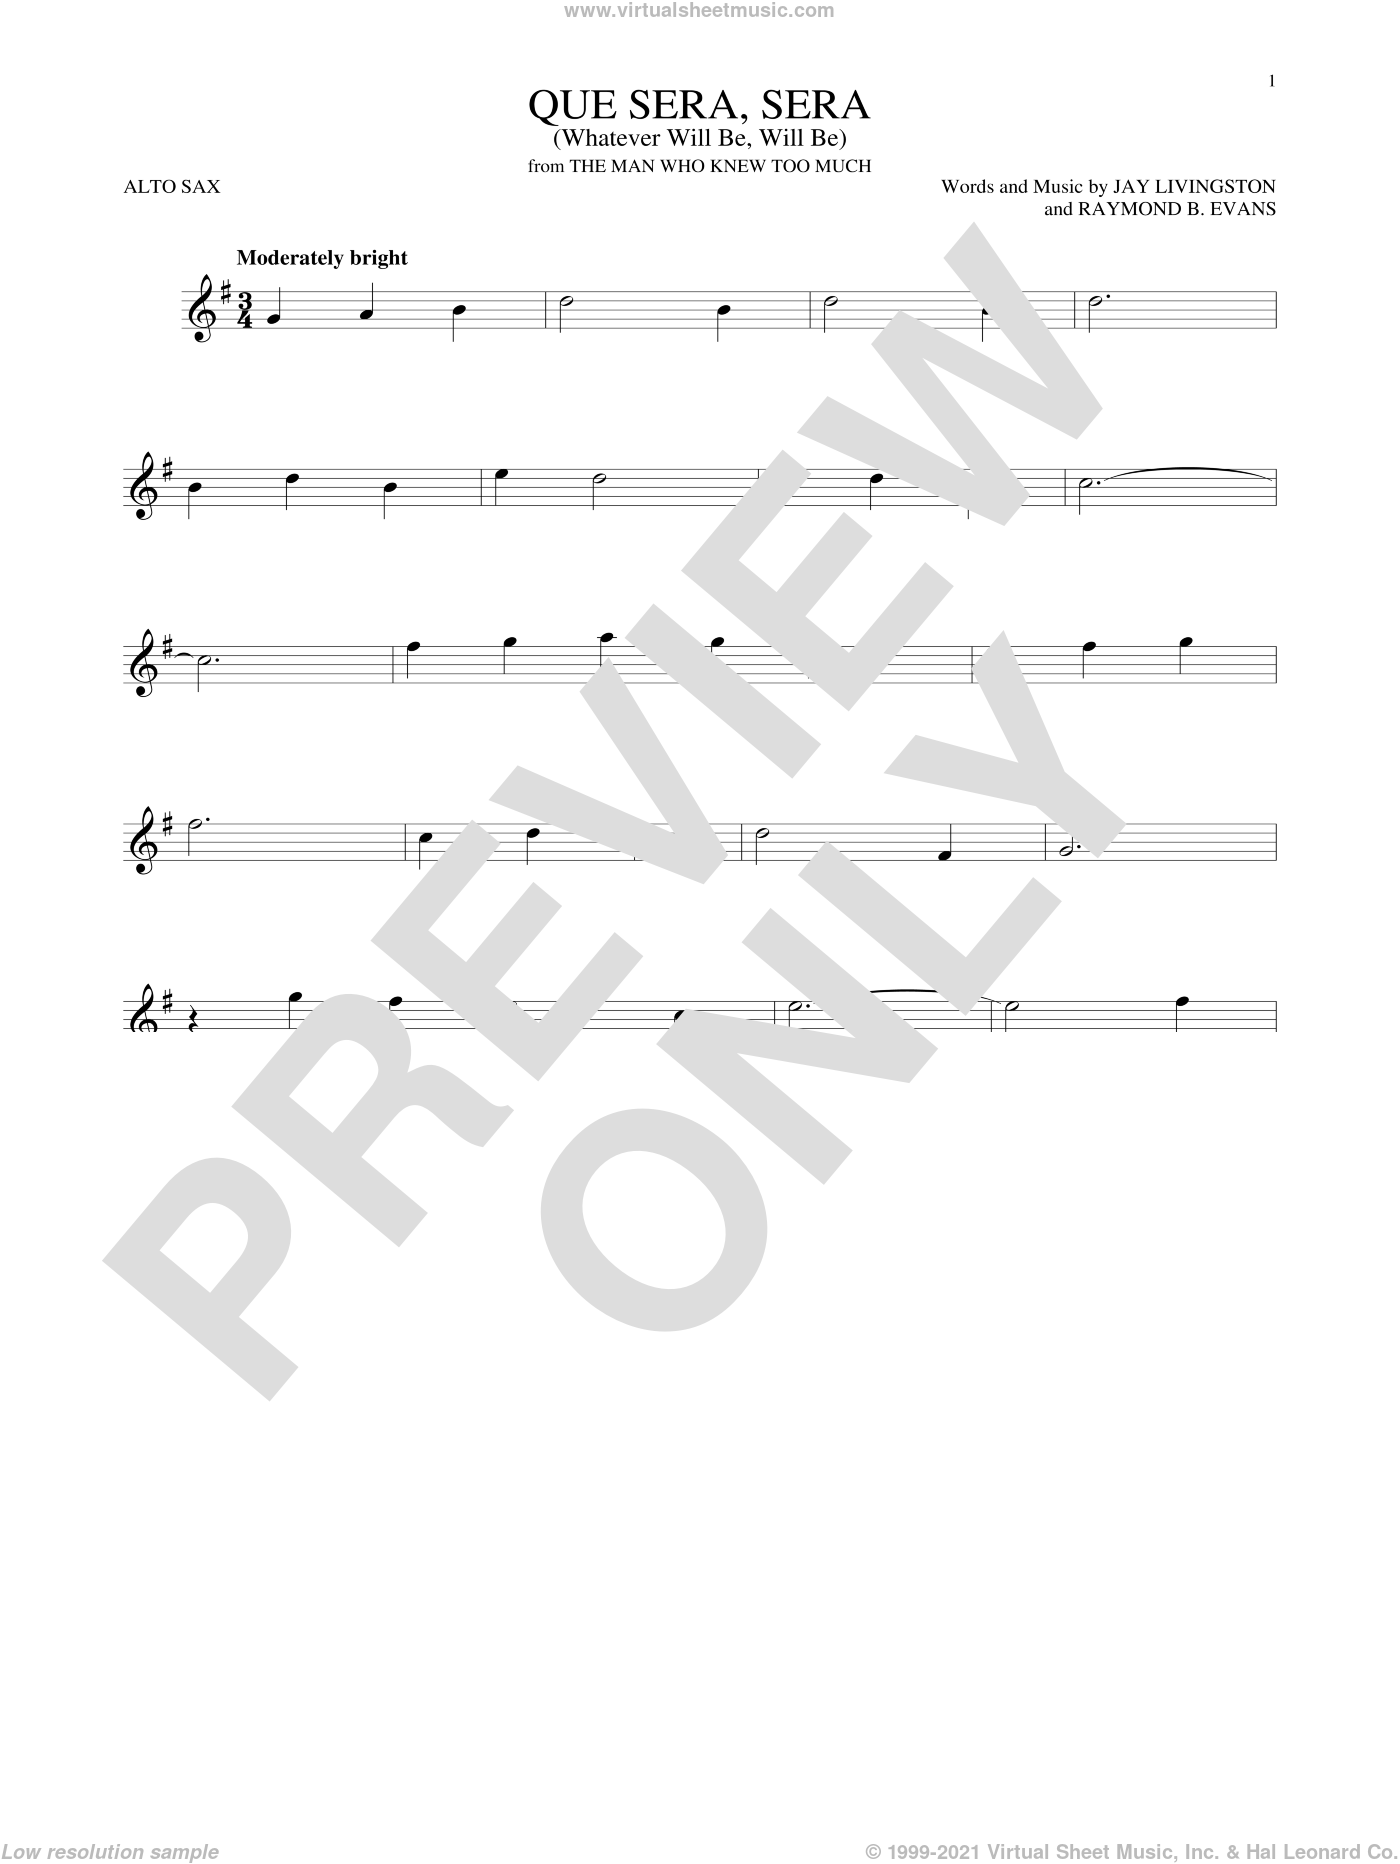 Que Sera, Sera (Whatever Will Be, Will Be) sheet music for alto saxophone solo ( Sax) by Doris Day and Jay Livingston, intermediate alto saxophone ( Sax). Score Image Preview.